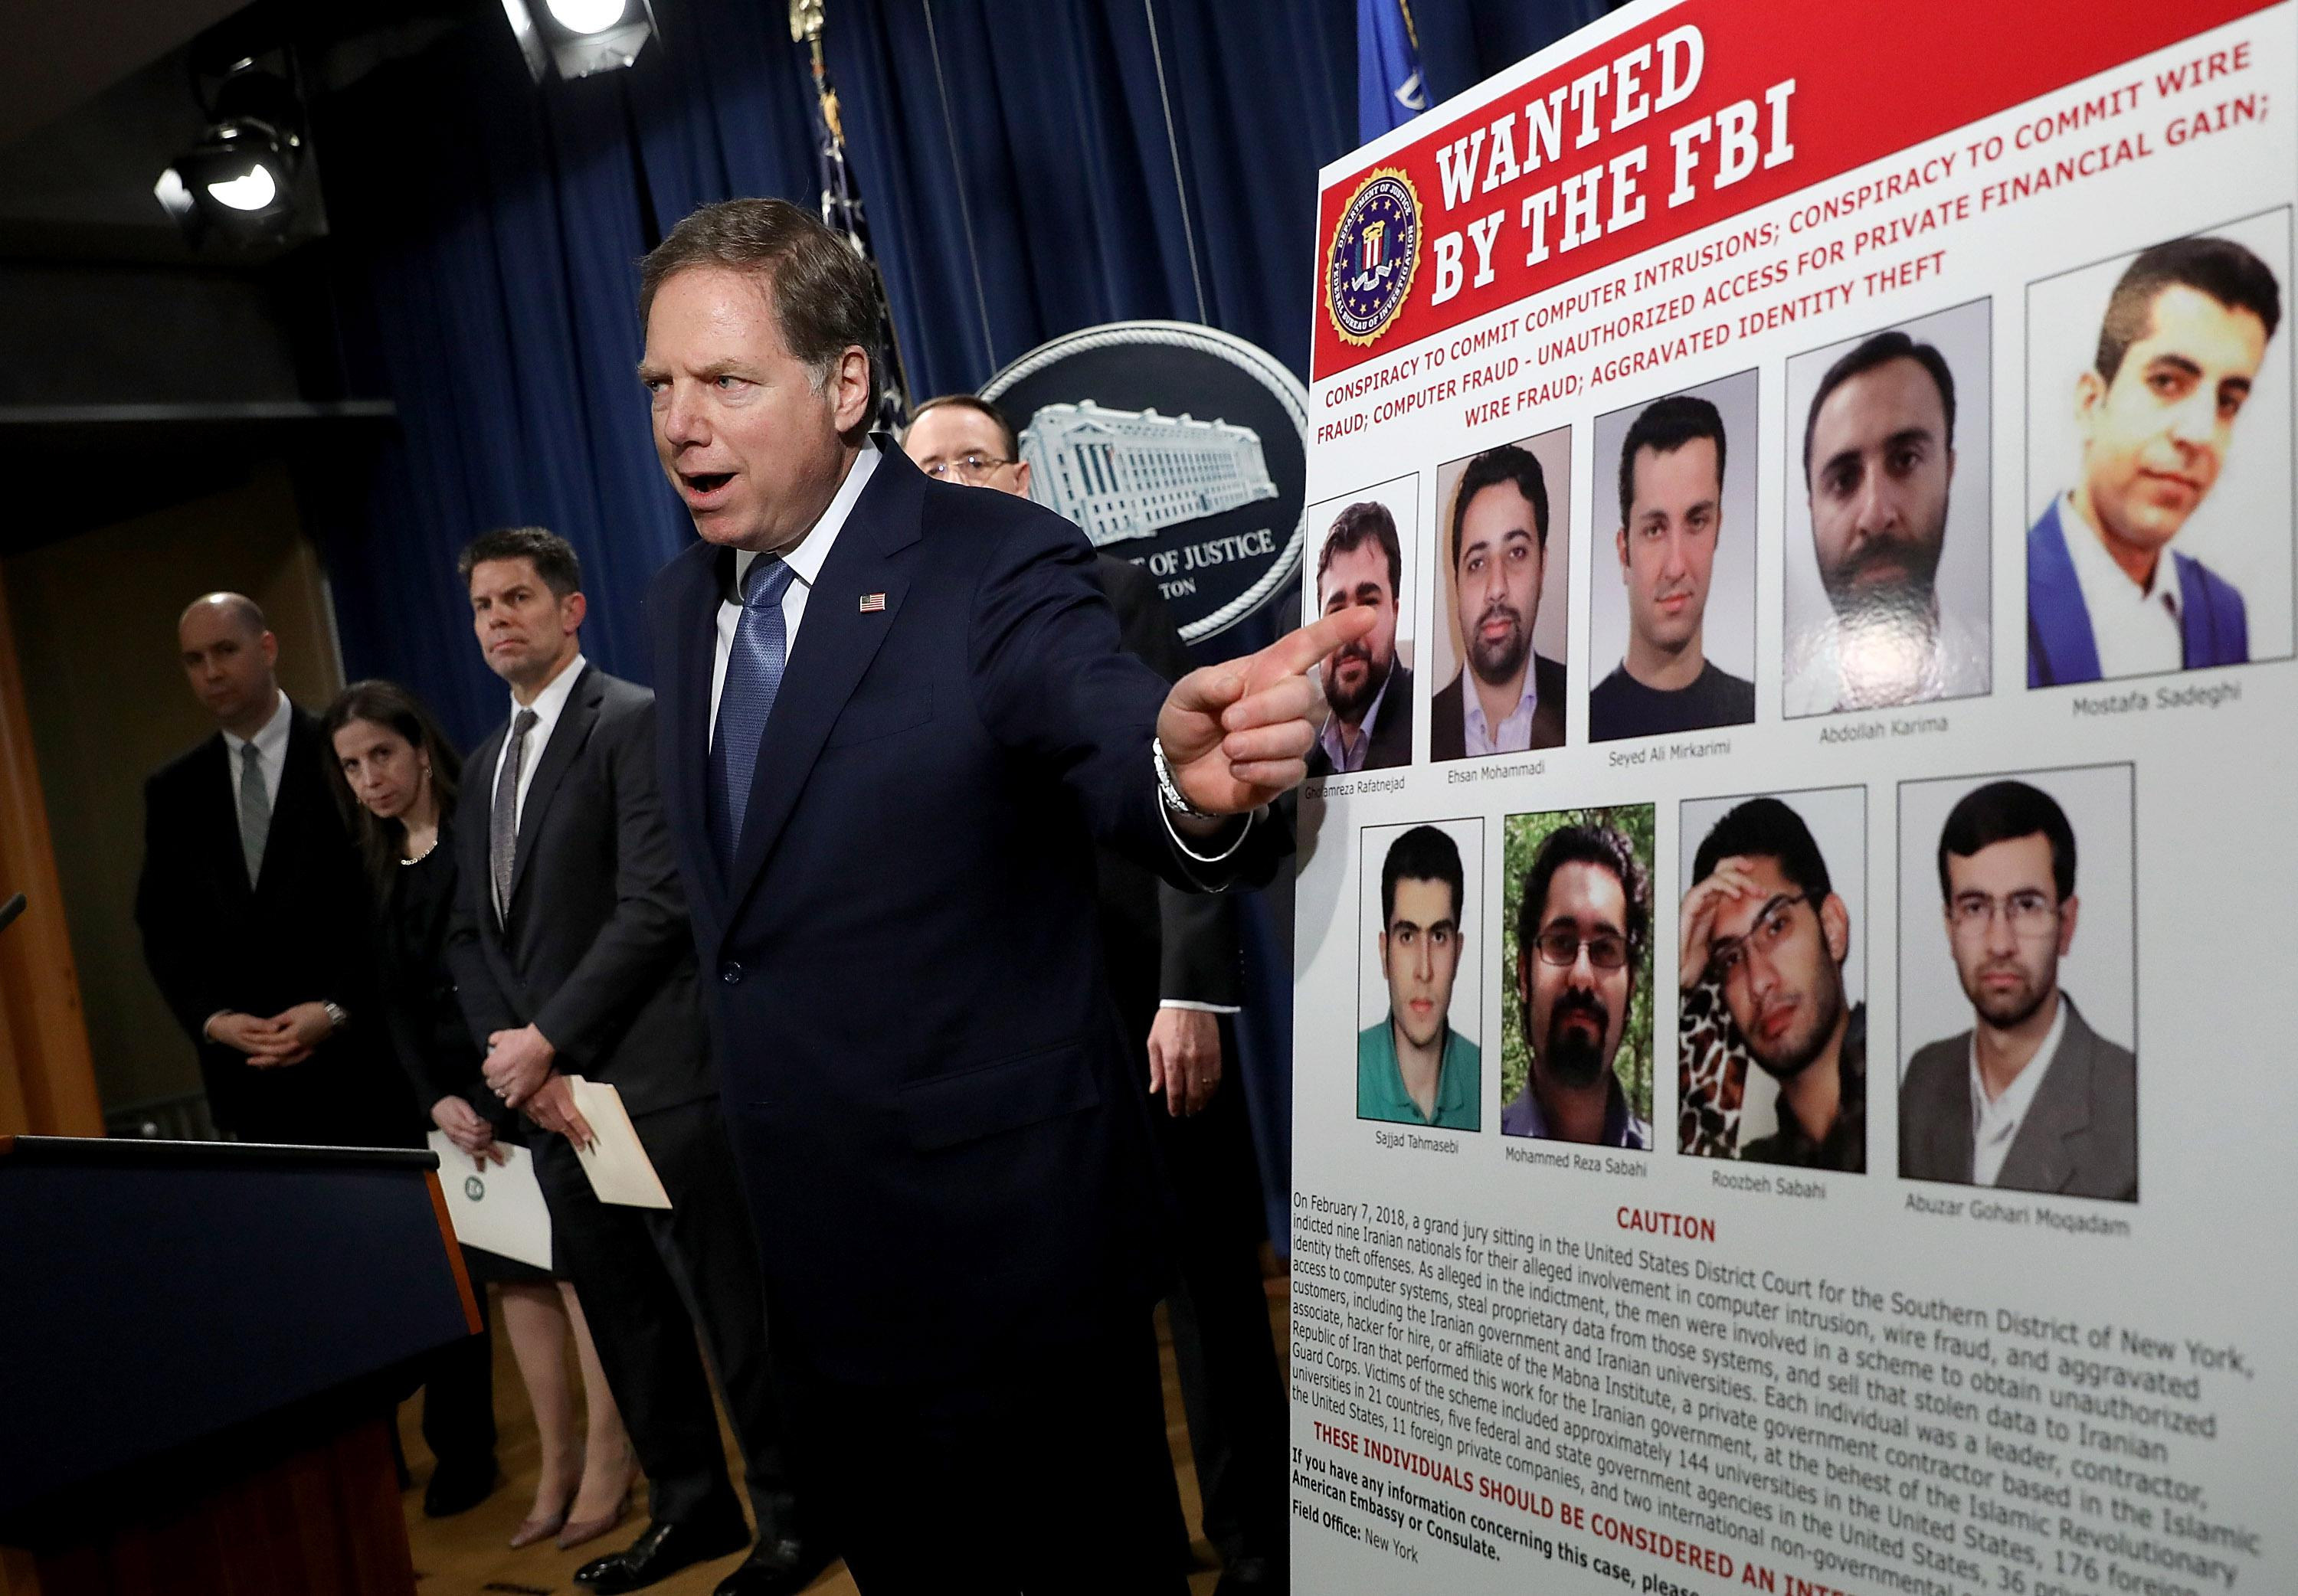 U.S. Attorney for the Southern District of New York Geoffrey Berman speaks at a press conference announcing a major cyber law enforcement action against nine Iranians.